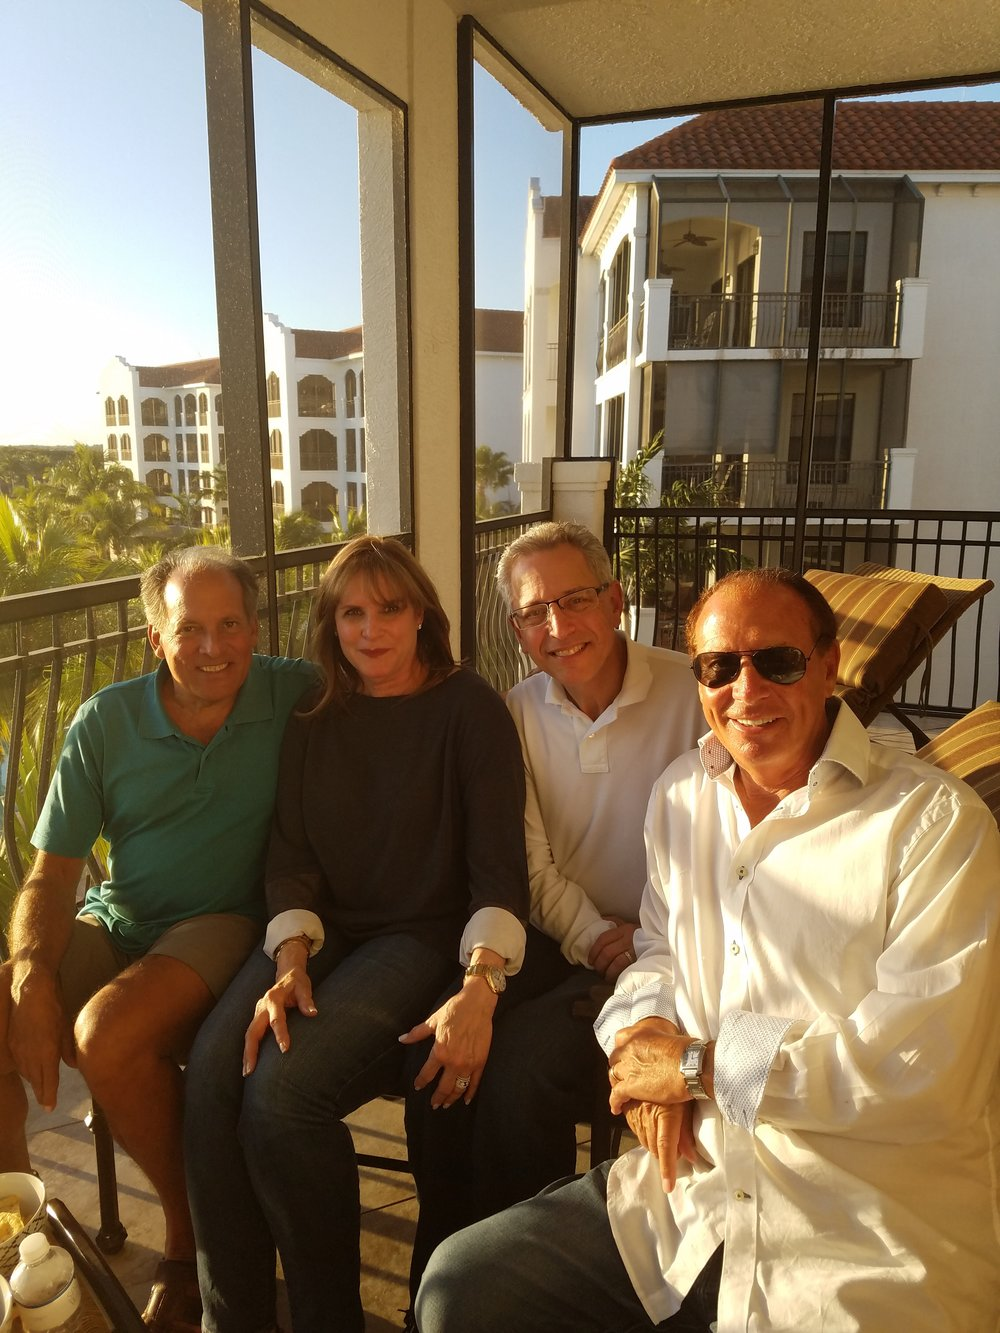 Steve Bilsky, Lisa Teitel Auerbach, Richie Auerbach, Alan Biren on a beautiful Florida day, February 2017